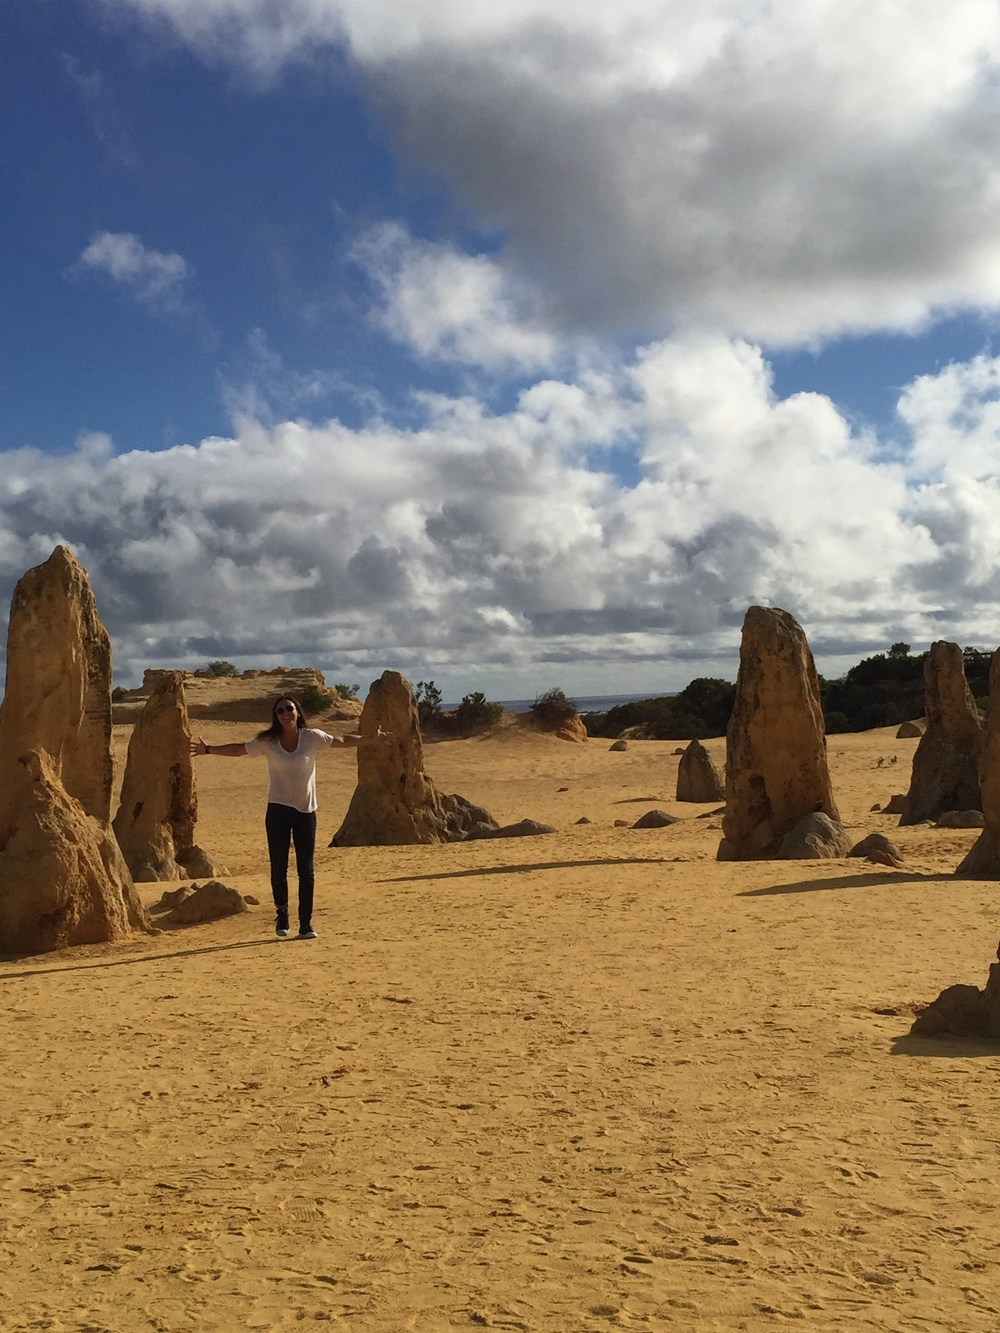 Loving The Pinnacles in Western Australia! - Sheana M.